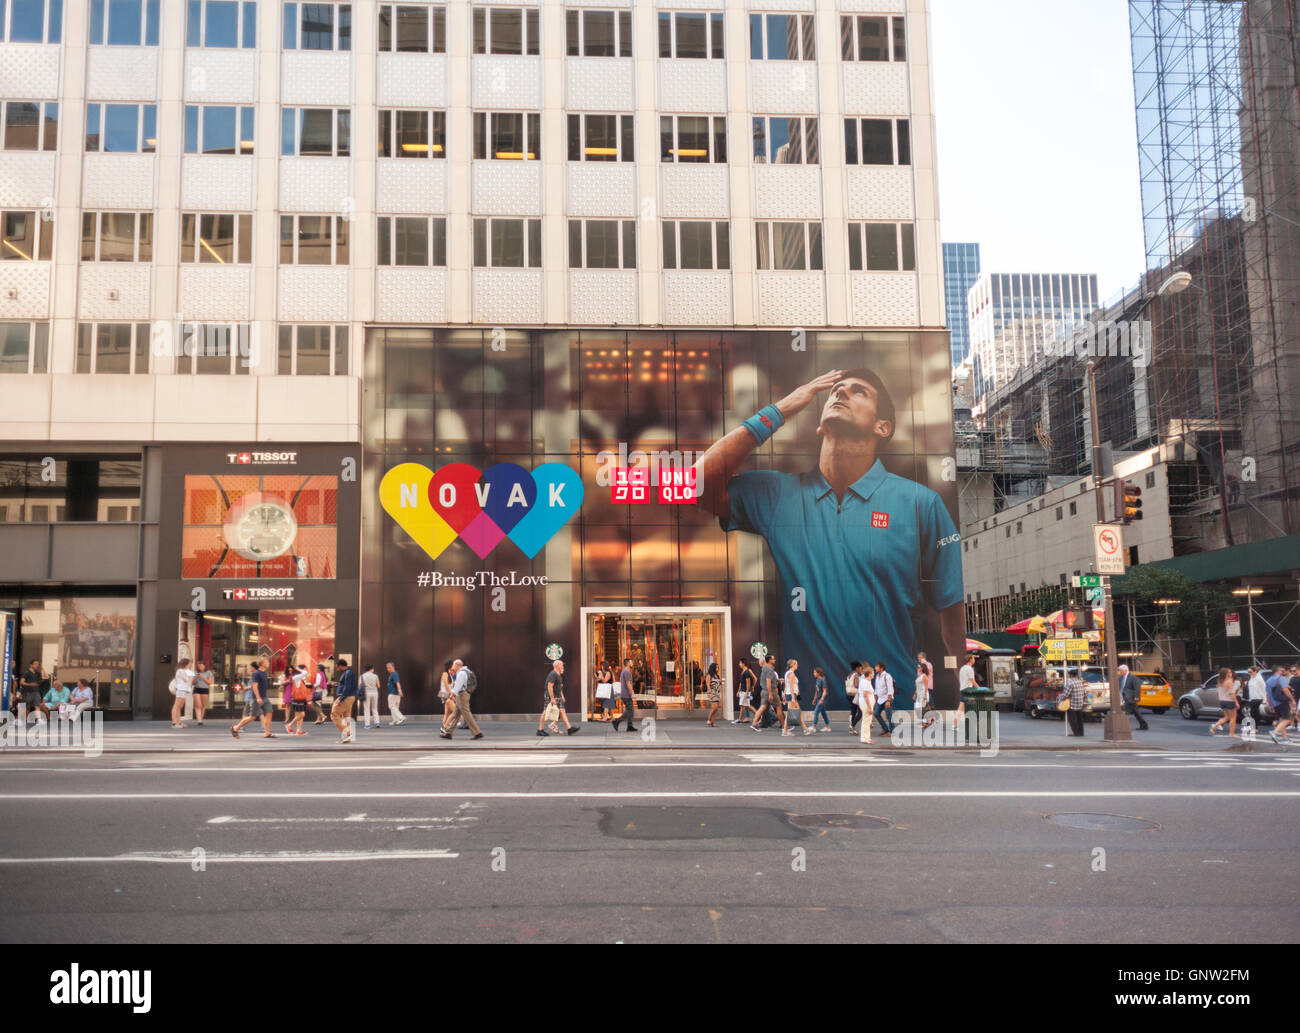 The Uniqlo store on Fifth Avenue in New York is decorated with a mural feating top seed tennis player Novak Djokovic, - Stock Image